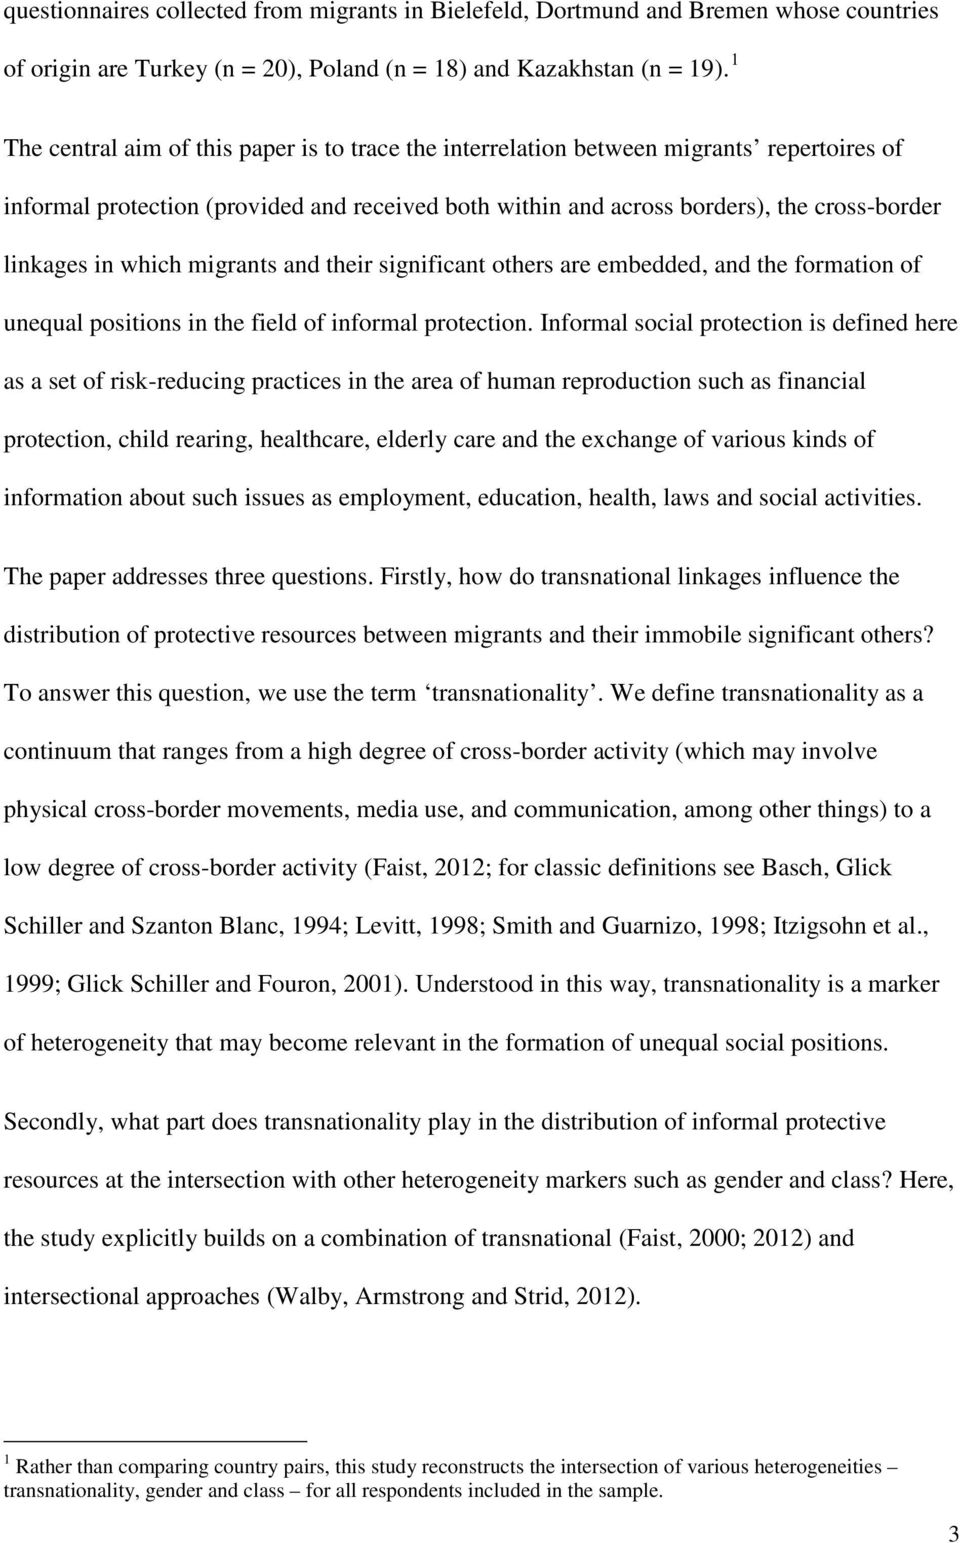 which migrants and their significant others are embedded, and the formation of unequal positions in the field of informal protection.